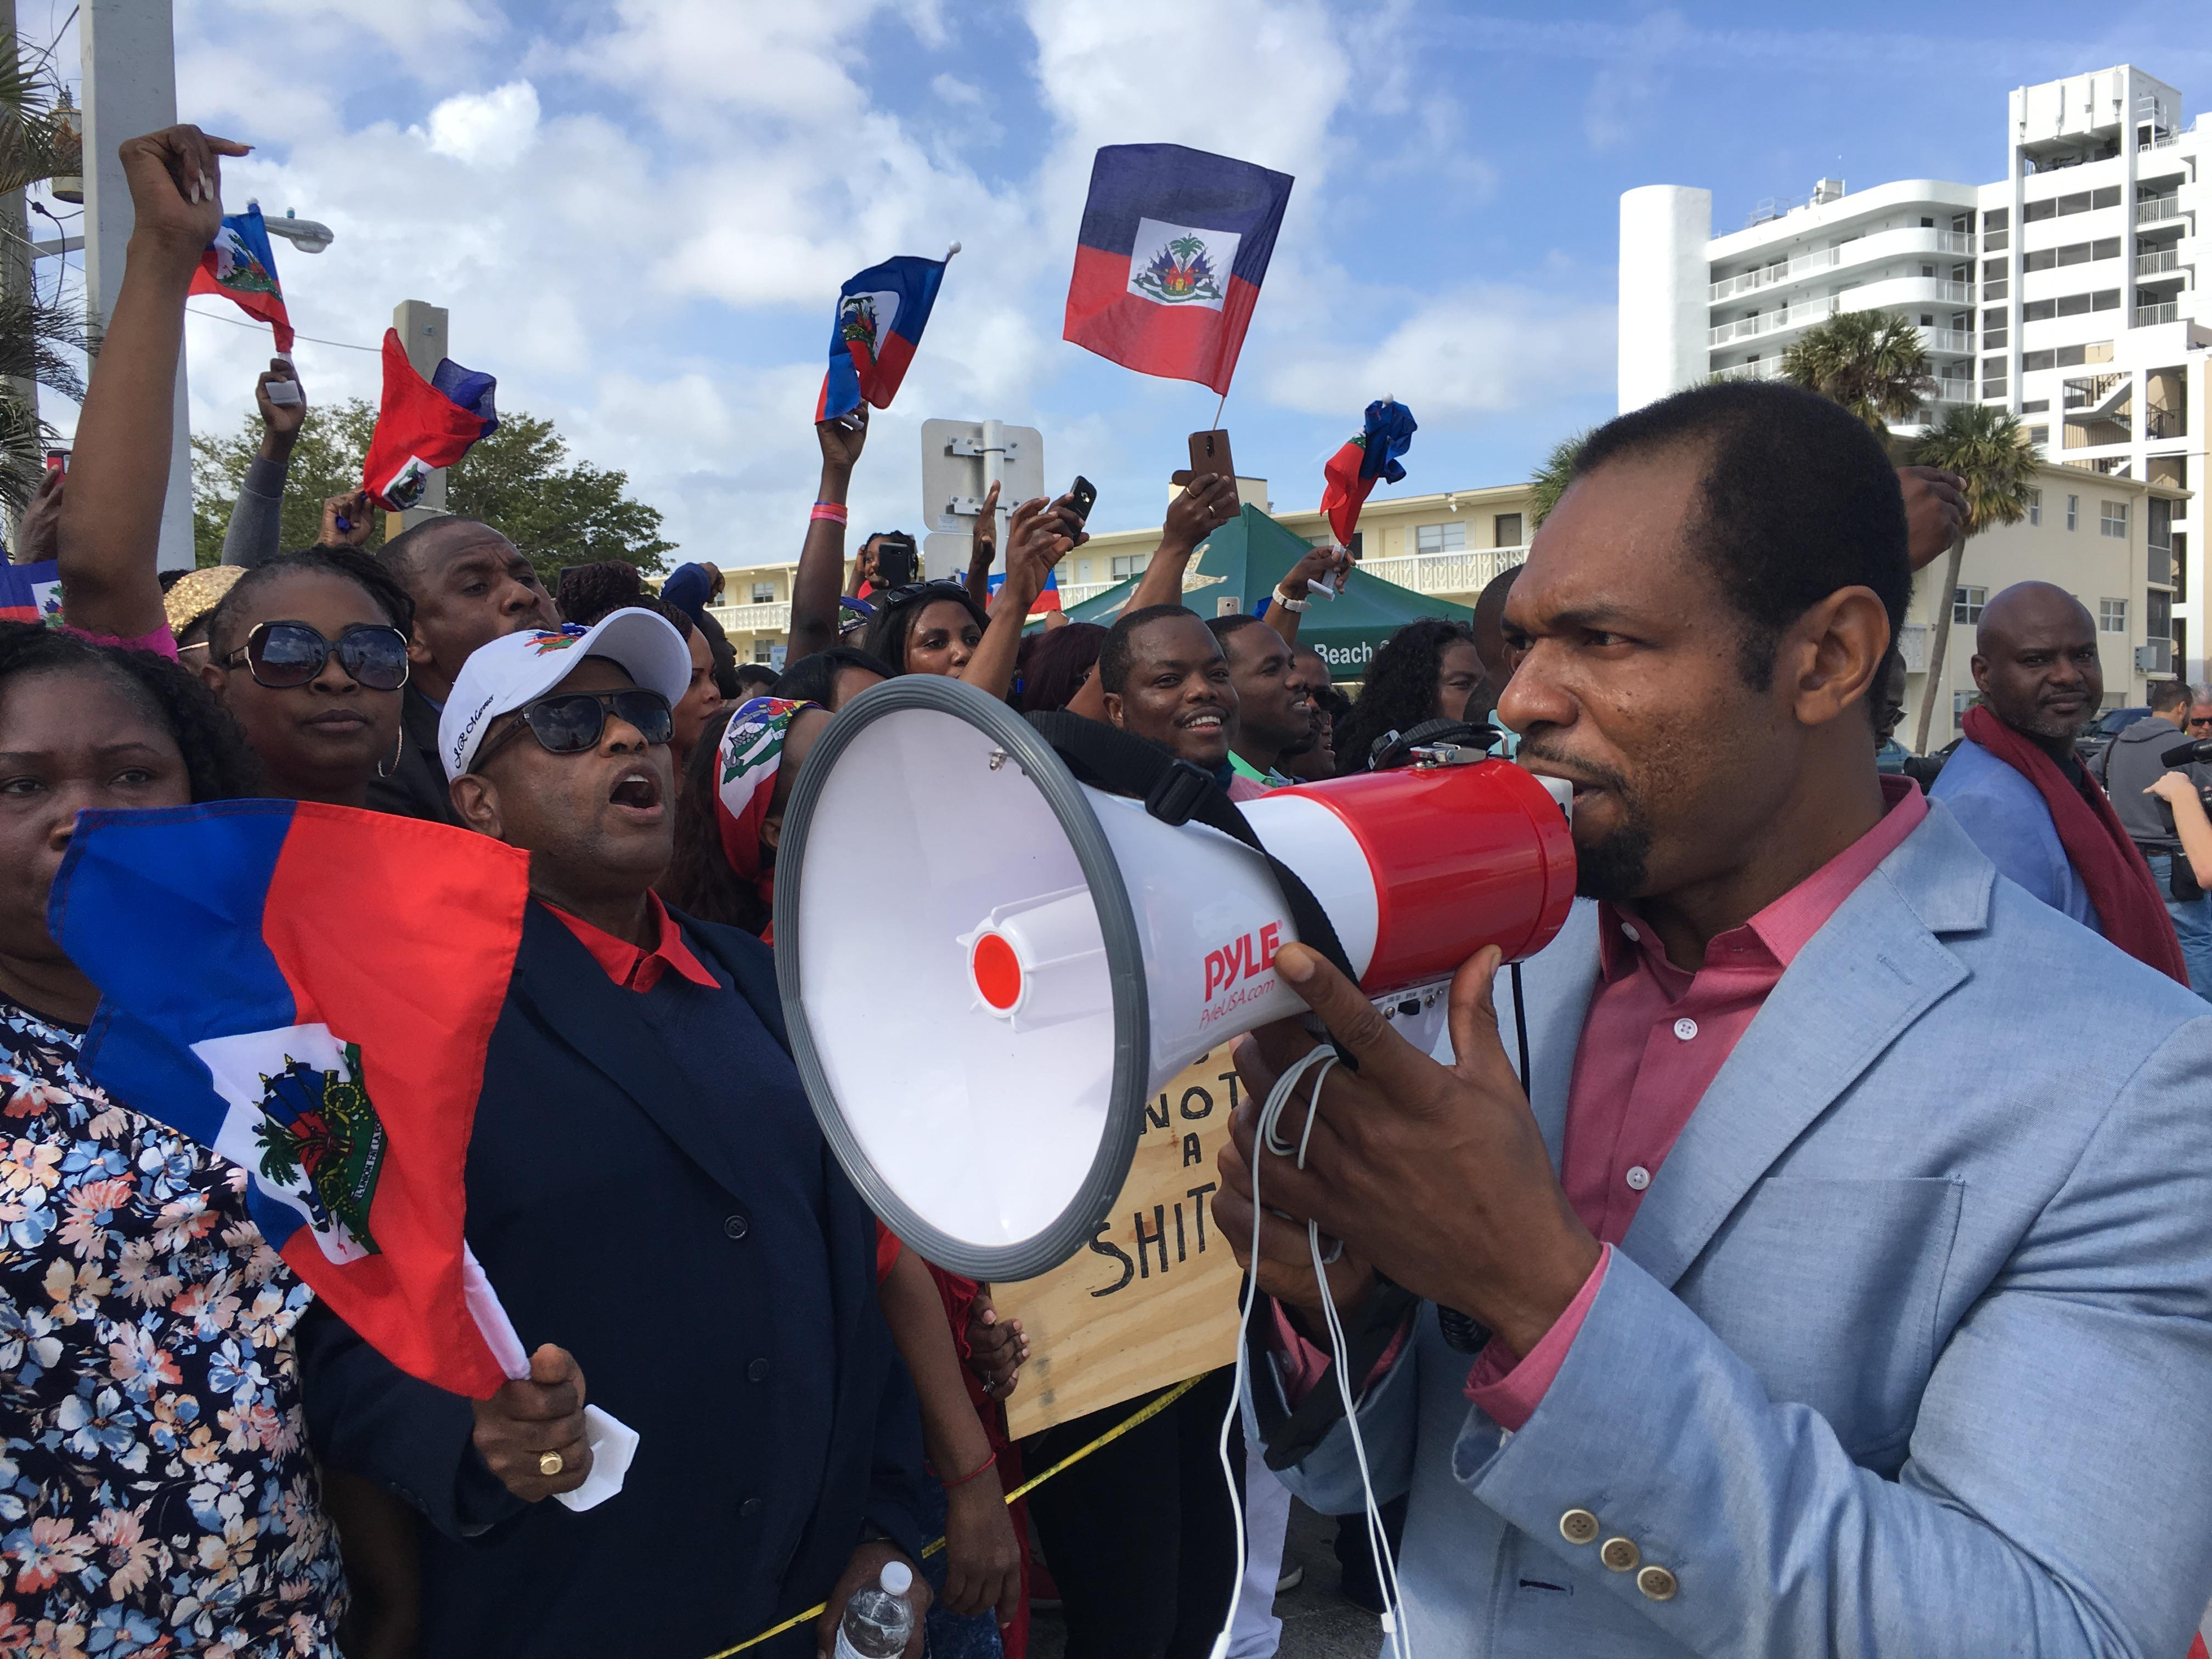 Hundreds of Haitians sent their own message after Trump's controversial comments (WPEC)